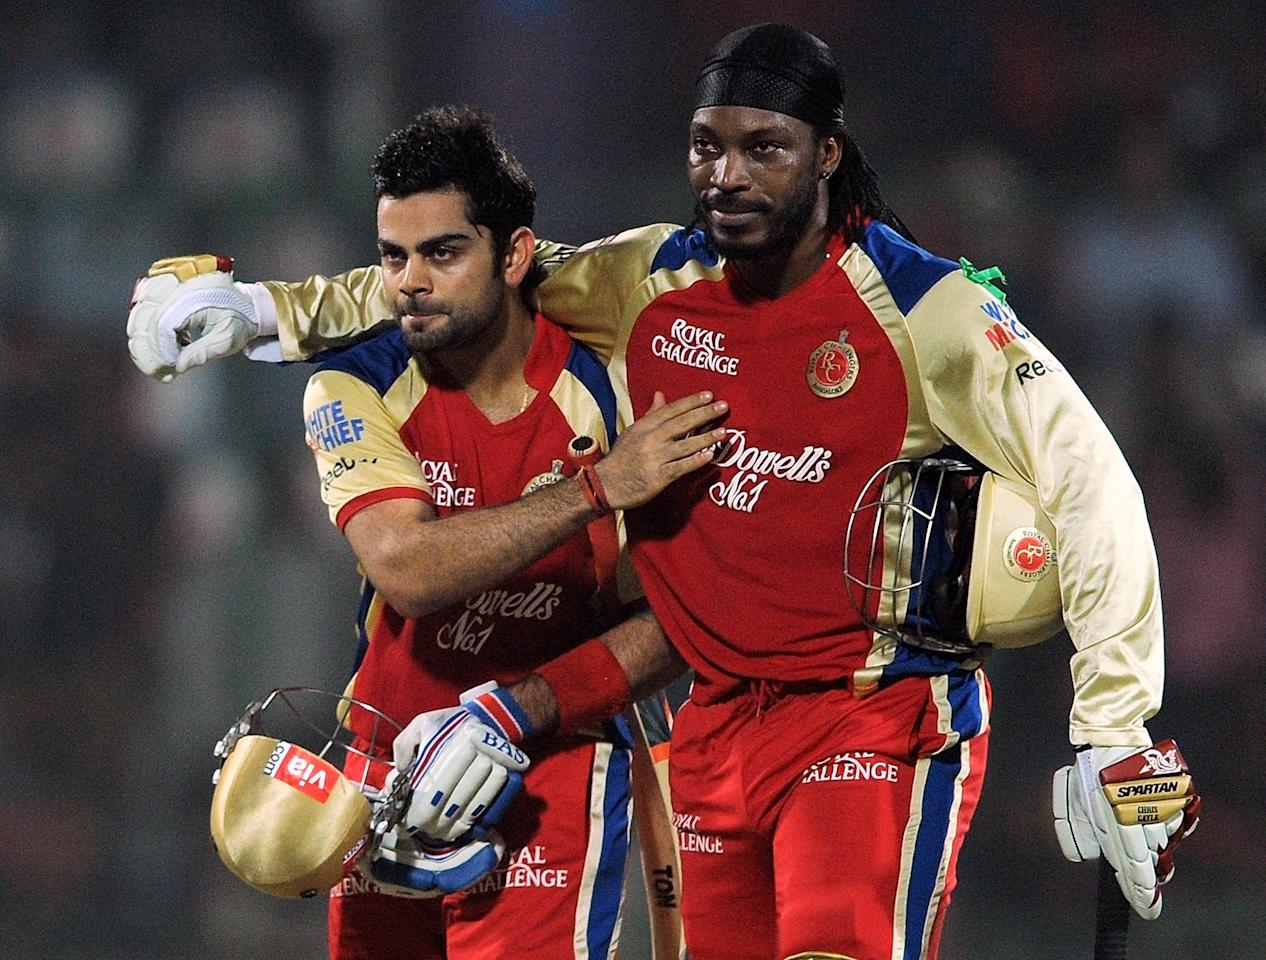 Royal Challengers Bangalore batsman Chris Gayle (R) hugs teammate Virat Kohli after the end of their innings during the IPL Twenty20 cricket match between Delhi Daredevils and Royal Challengers Bangalore at the Feroz Shah Kotla stadium in New Delhi on May 17, 2012.      RESTRICTED TO EDITORIAL USE. MOBILE USE WITHIN NEWS PACKAGE. AFP PHOTO/ MANAN VATSYAYANA          (Photo credit should read MANAN VATSYAYANA/AFP/GettyImages)